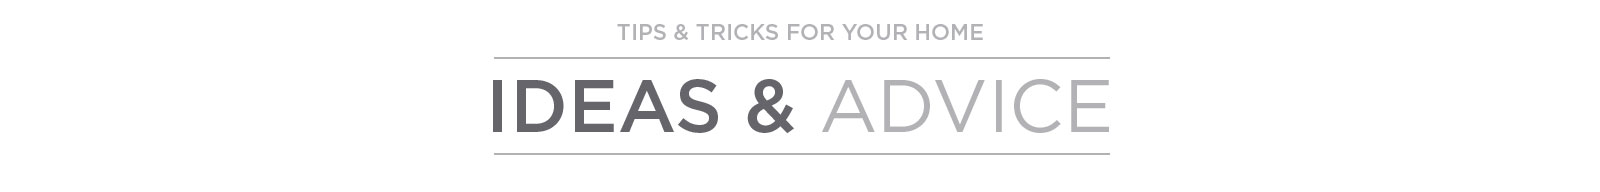 Ideas & Advice: Tips & Tricks for Your Home